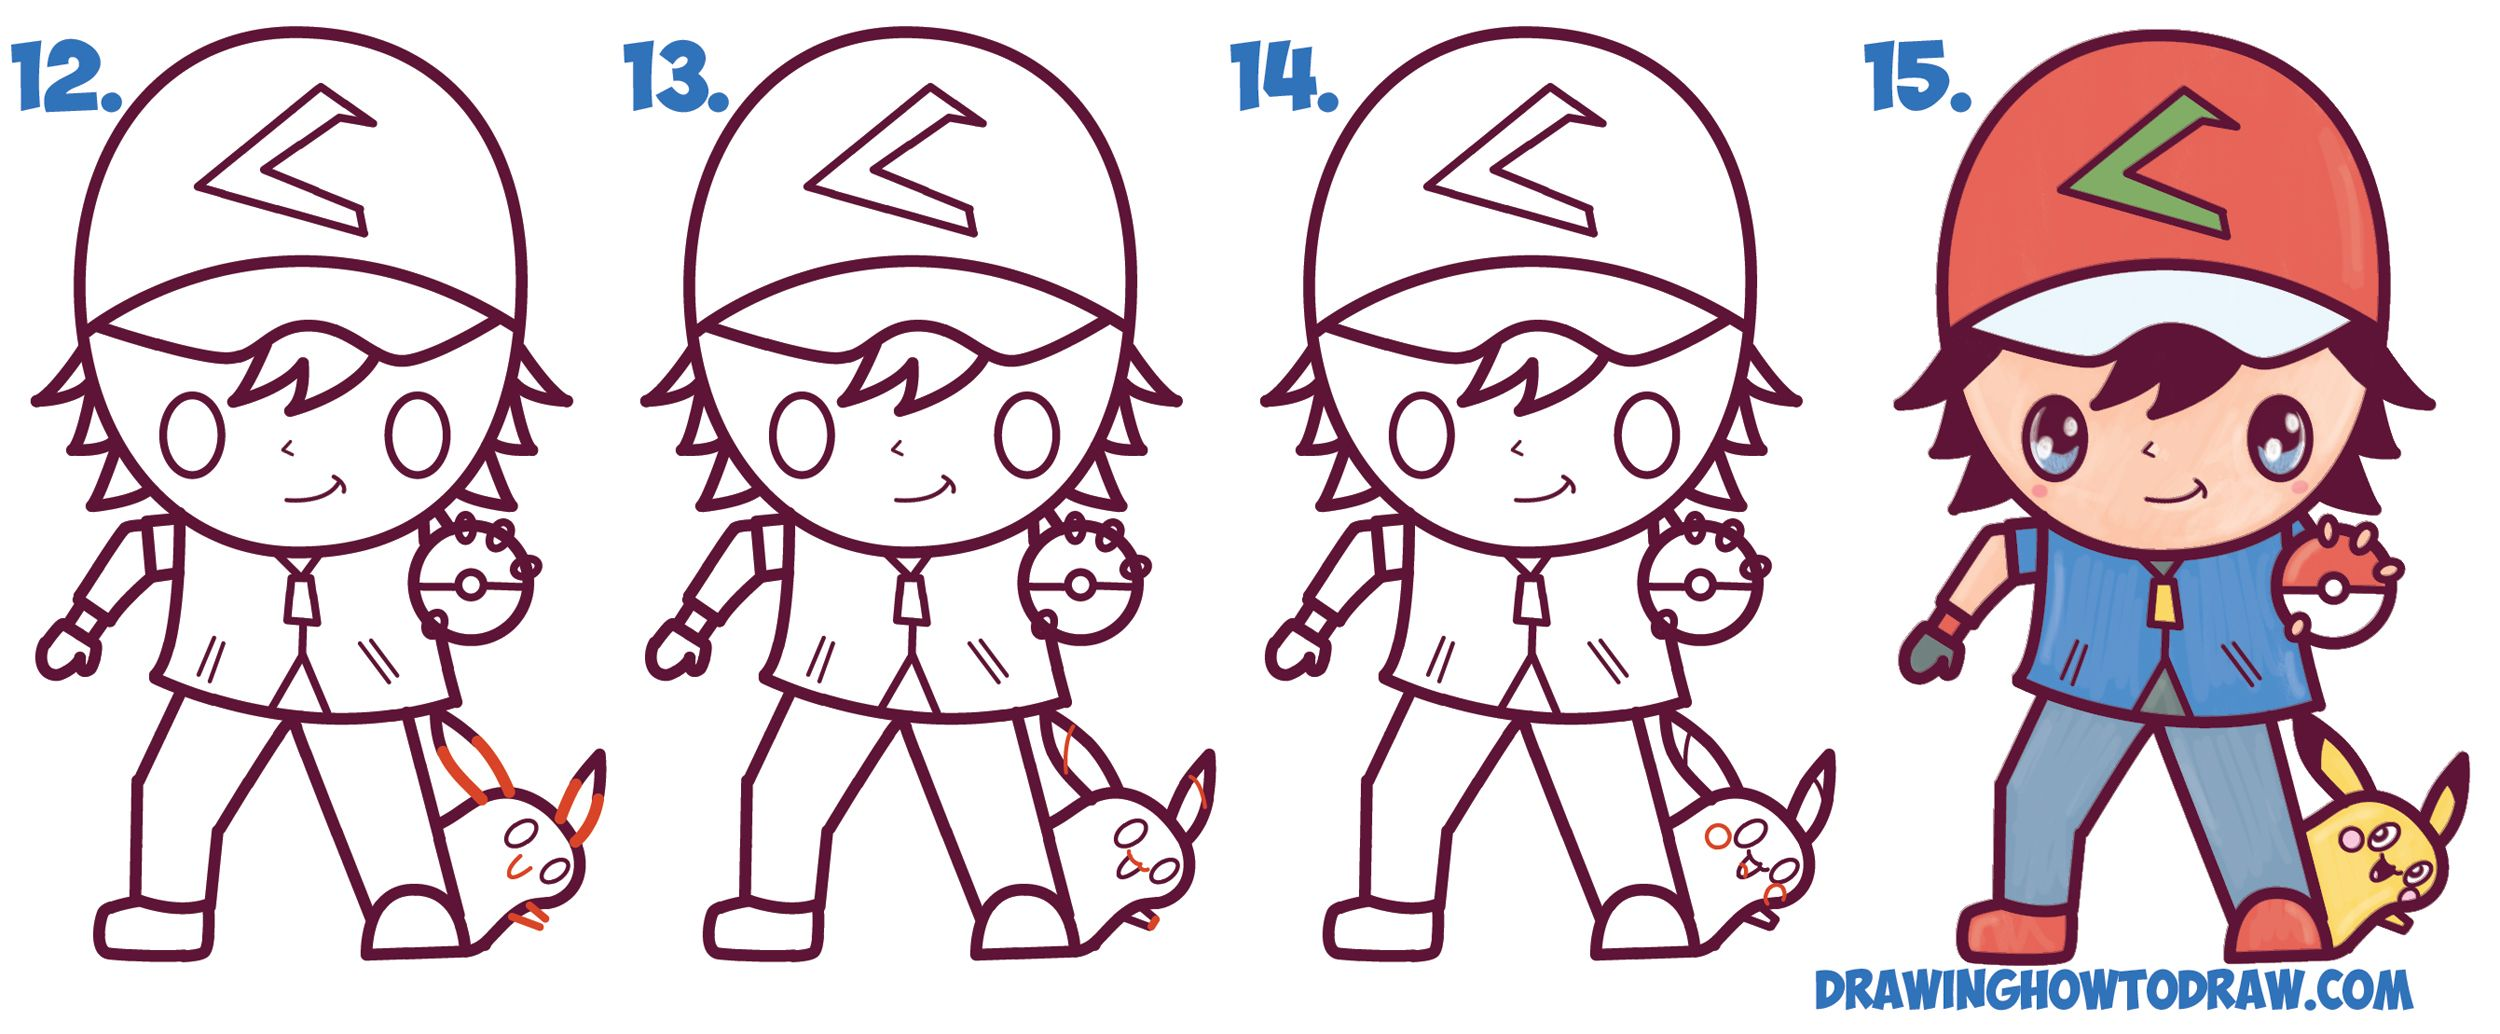 Ash Ketchum Drawing At Getdrawings Com Free For Personal Use Ash